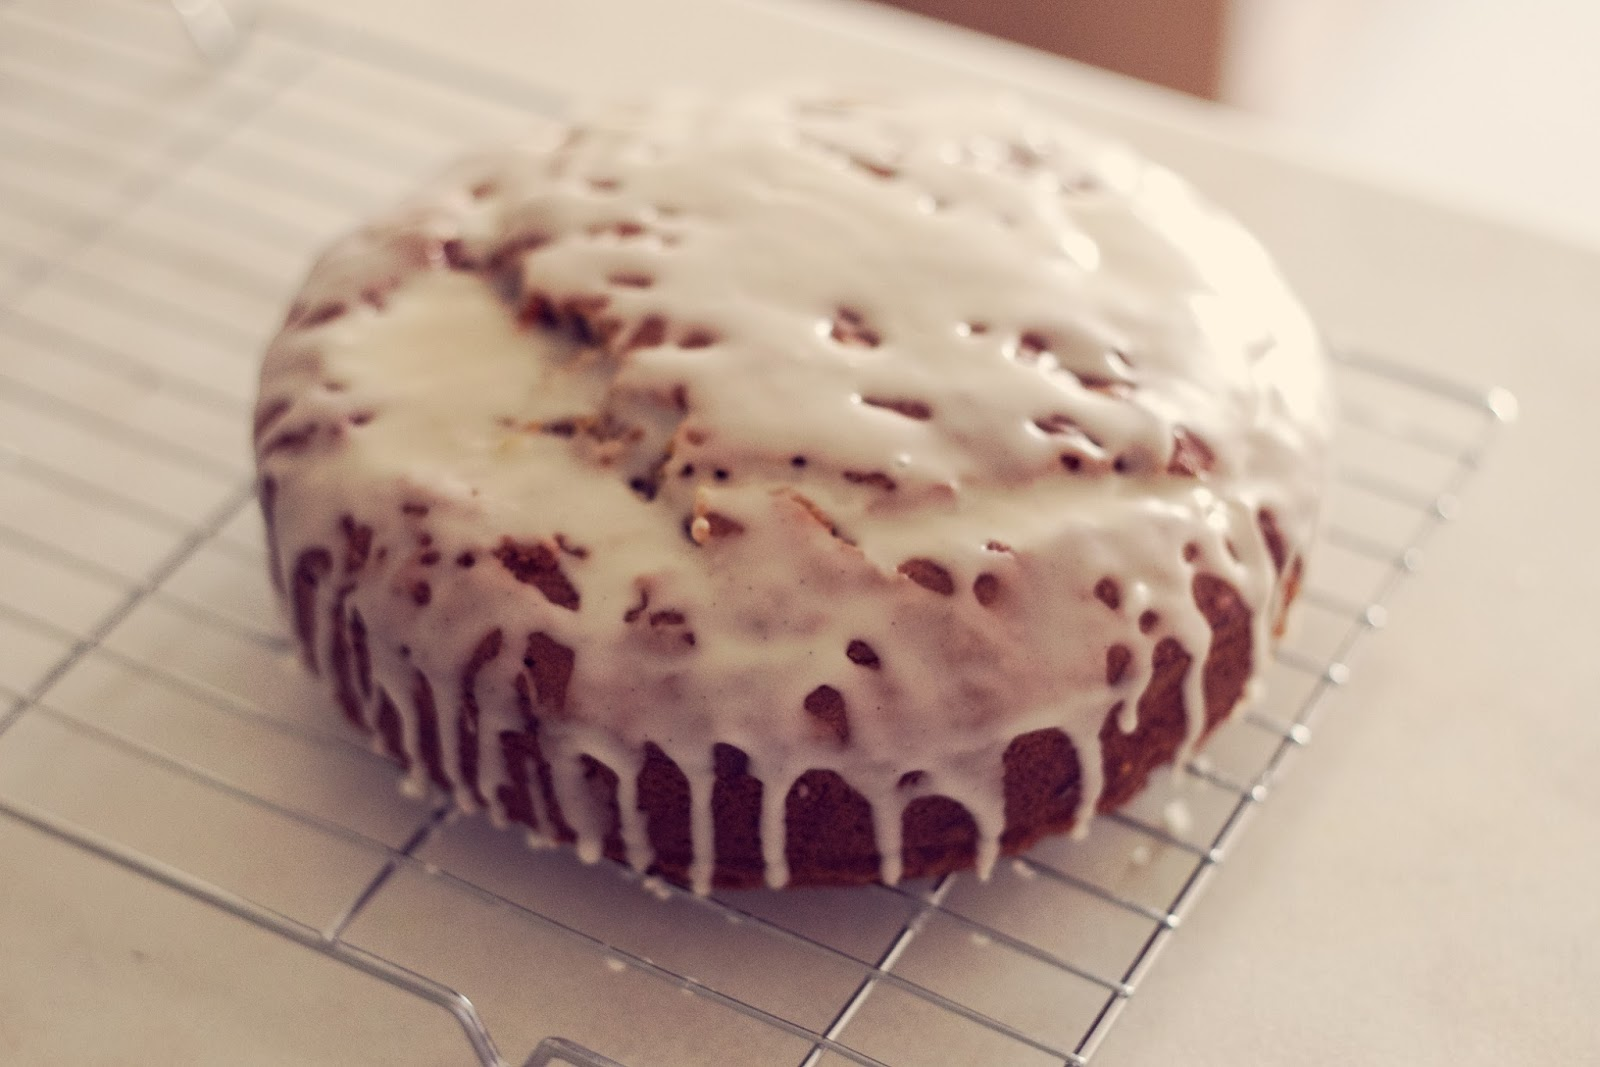 Carrot cake on cooling rack dripping in icing.